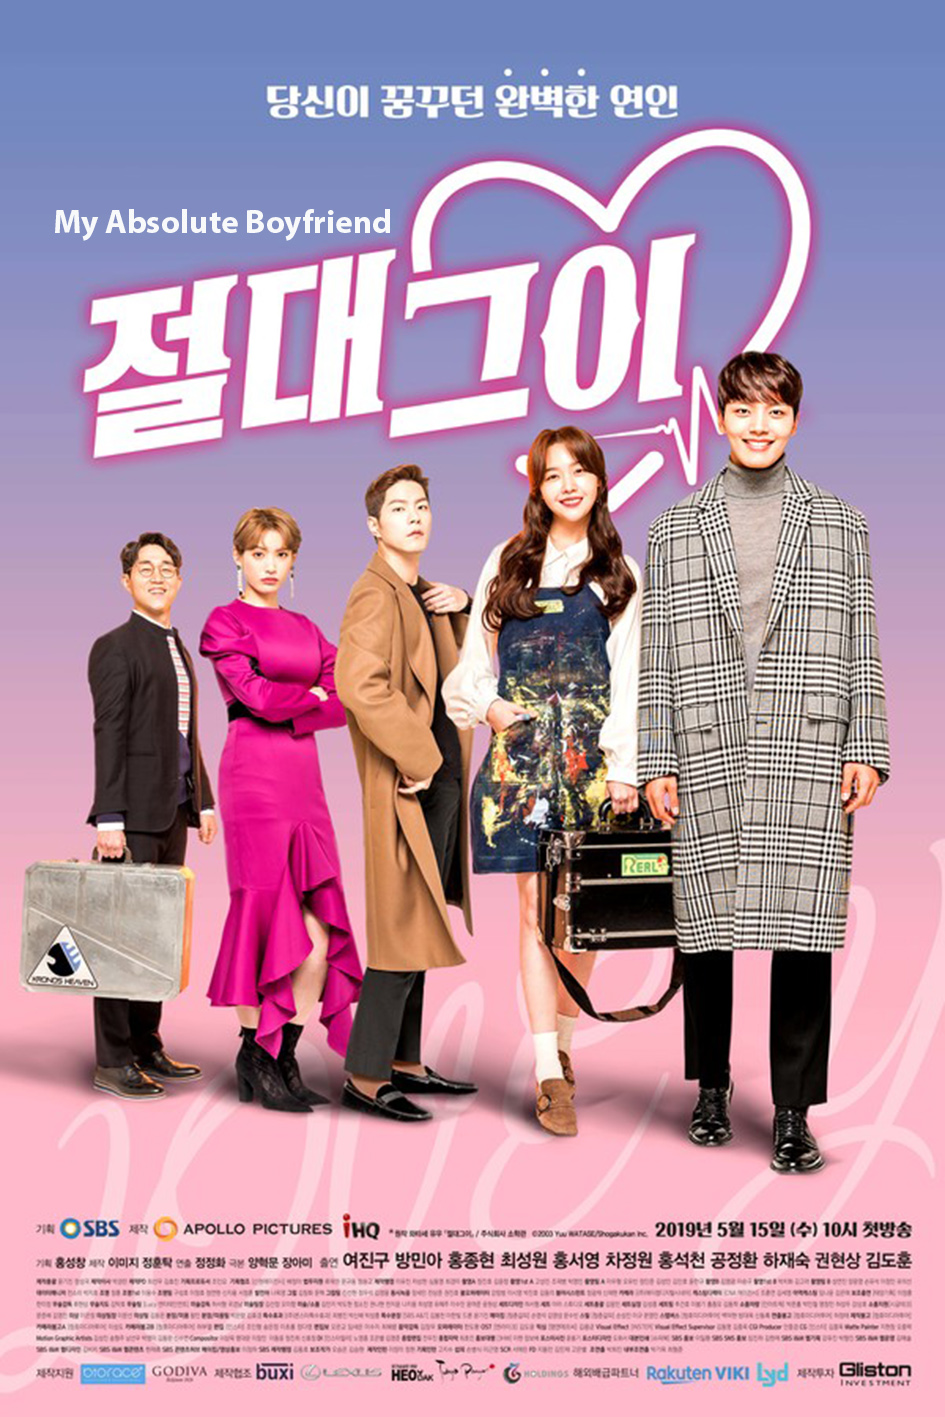 My Absolute Boyfriend [2019 South Korea Series] 40 episodes END (5) Fantasy, Drama, Romance, Comedy